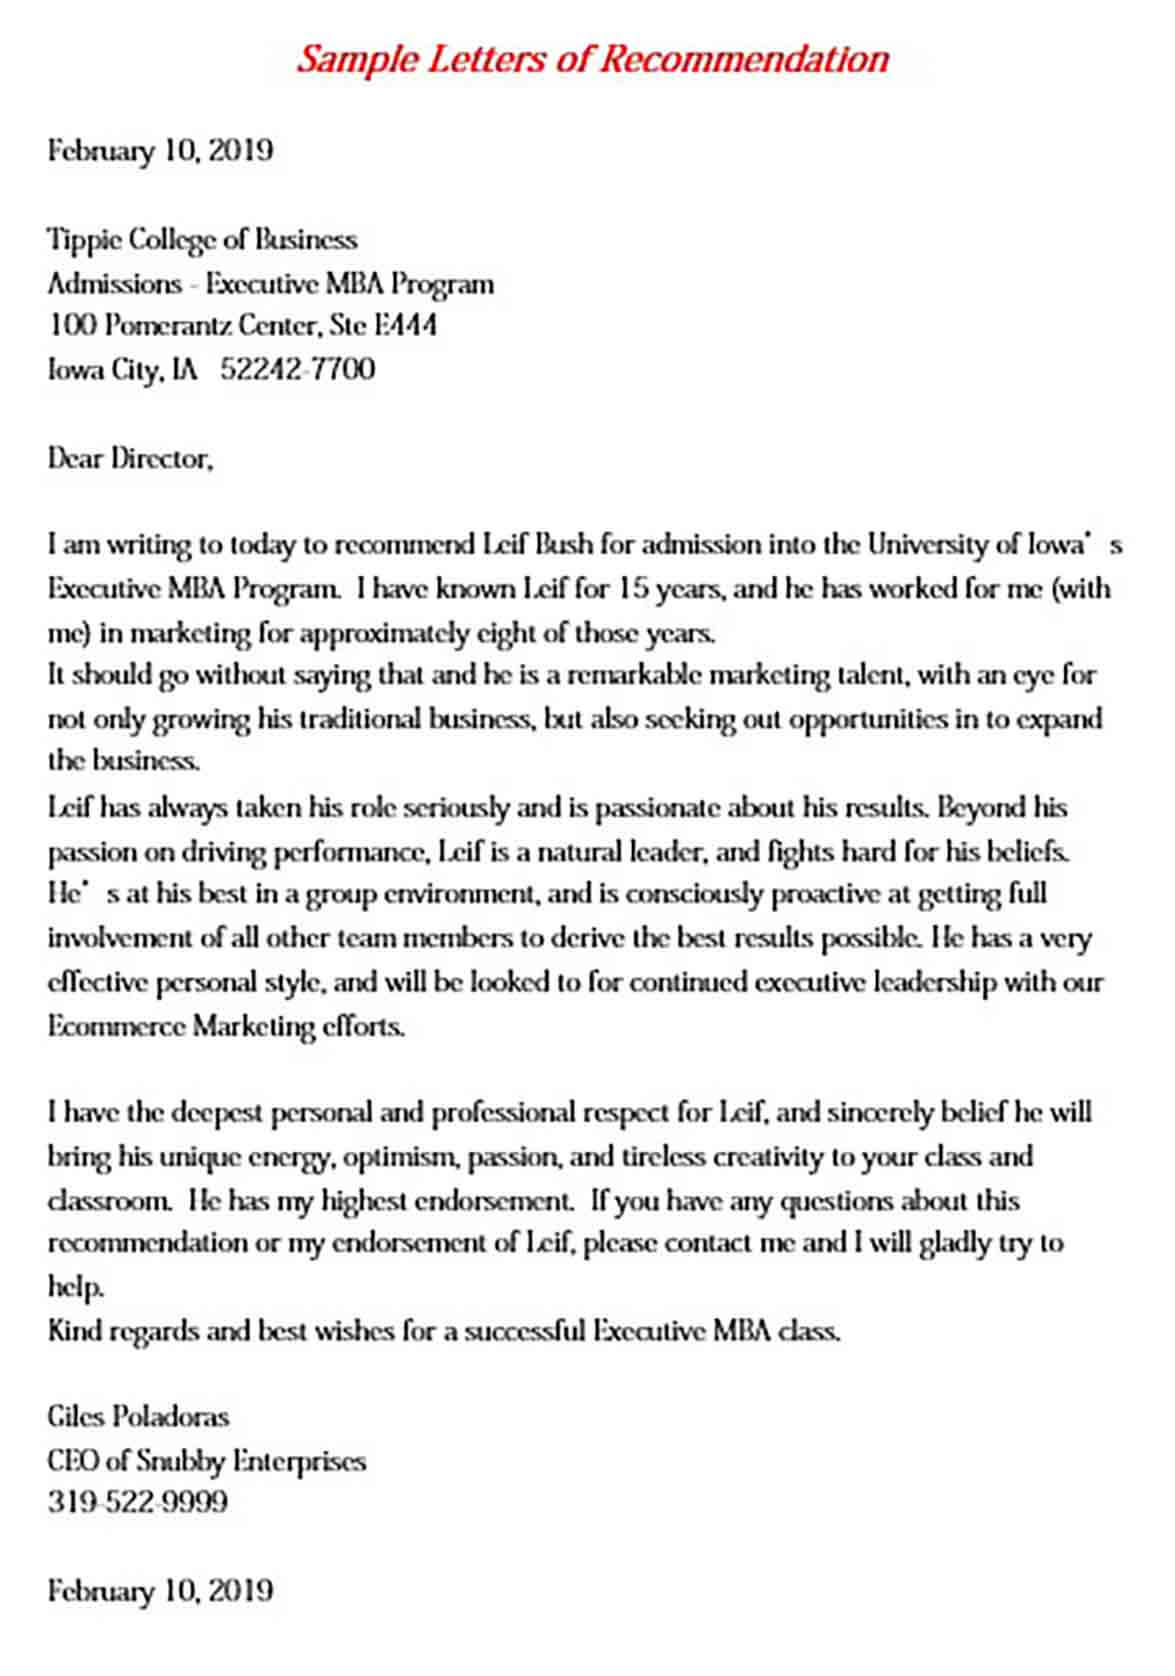 Letter Of Recommendation Template Pdf from moussyusa.com